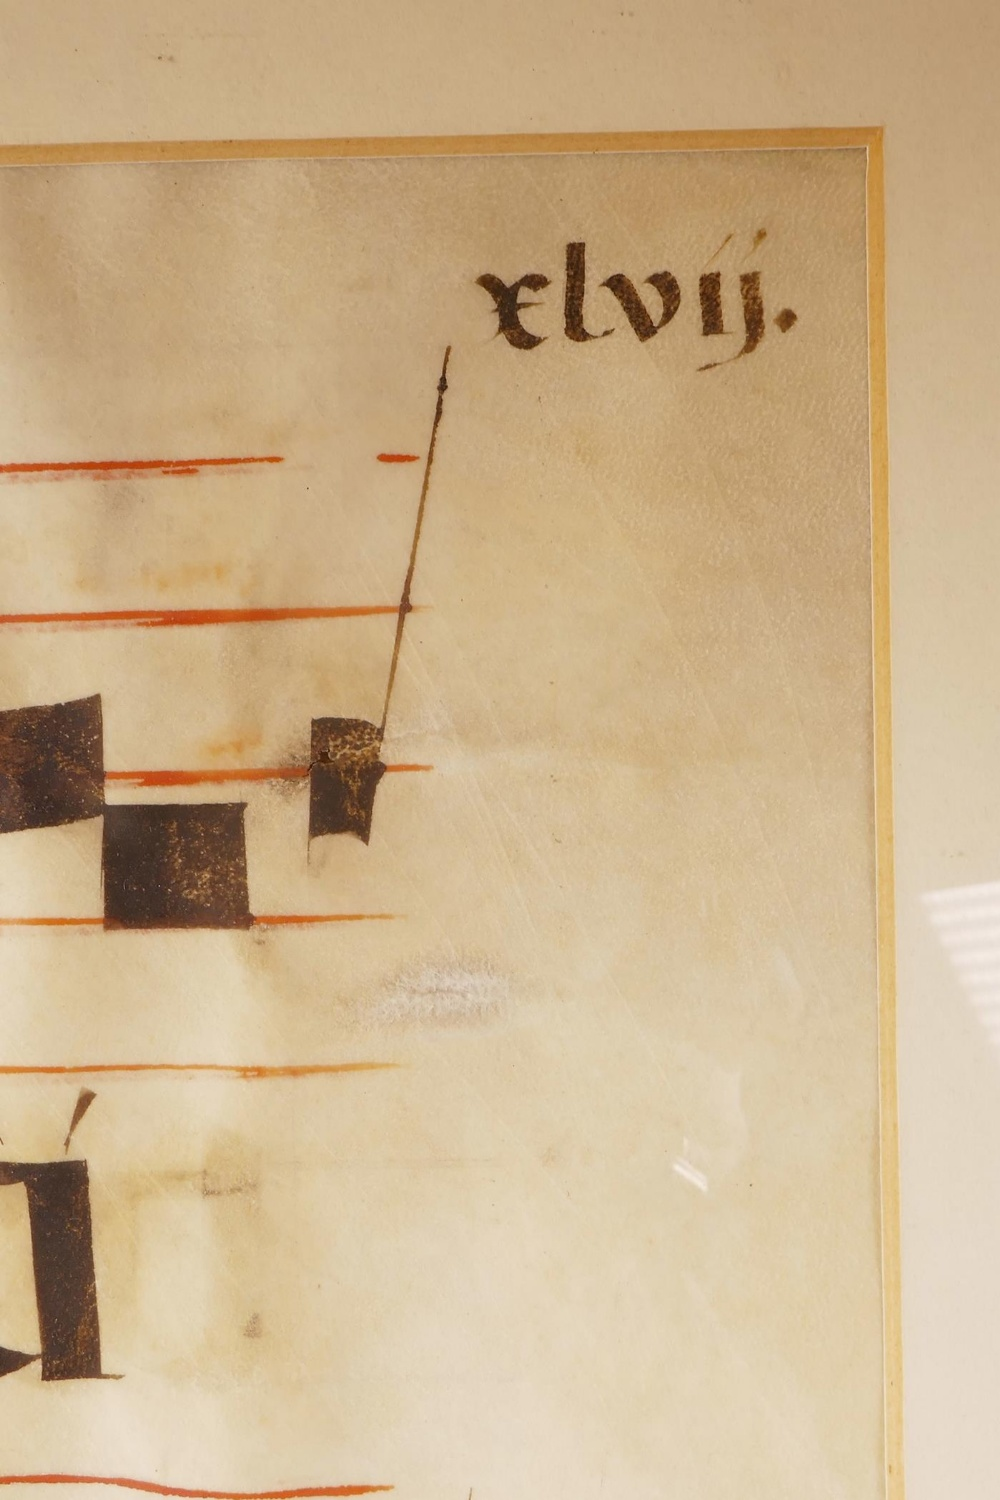 Lot 18 - A sheet of music from the C16th, hand coloured on vellum, likely produced in a medieval monastery as